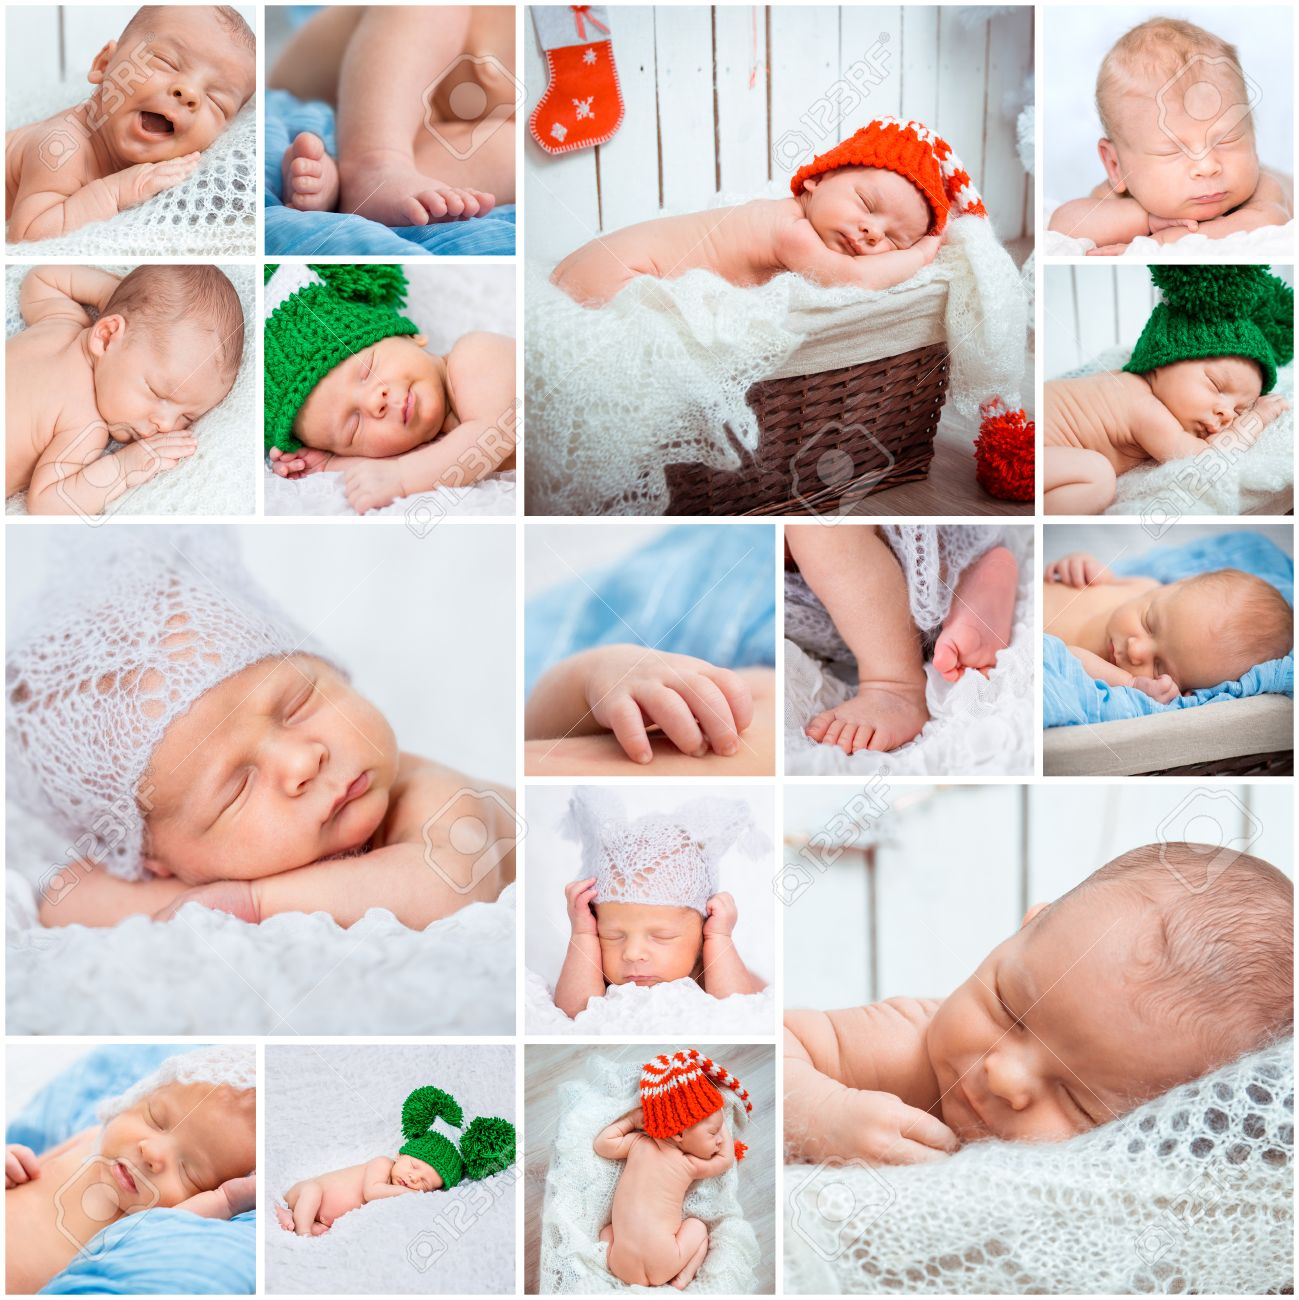 collage of a sweet newborn babies photos stock photo, picture and